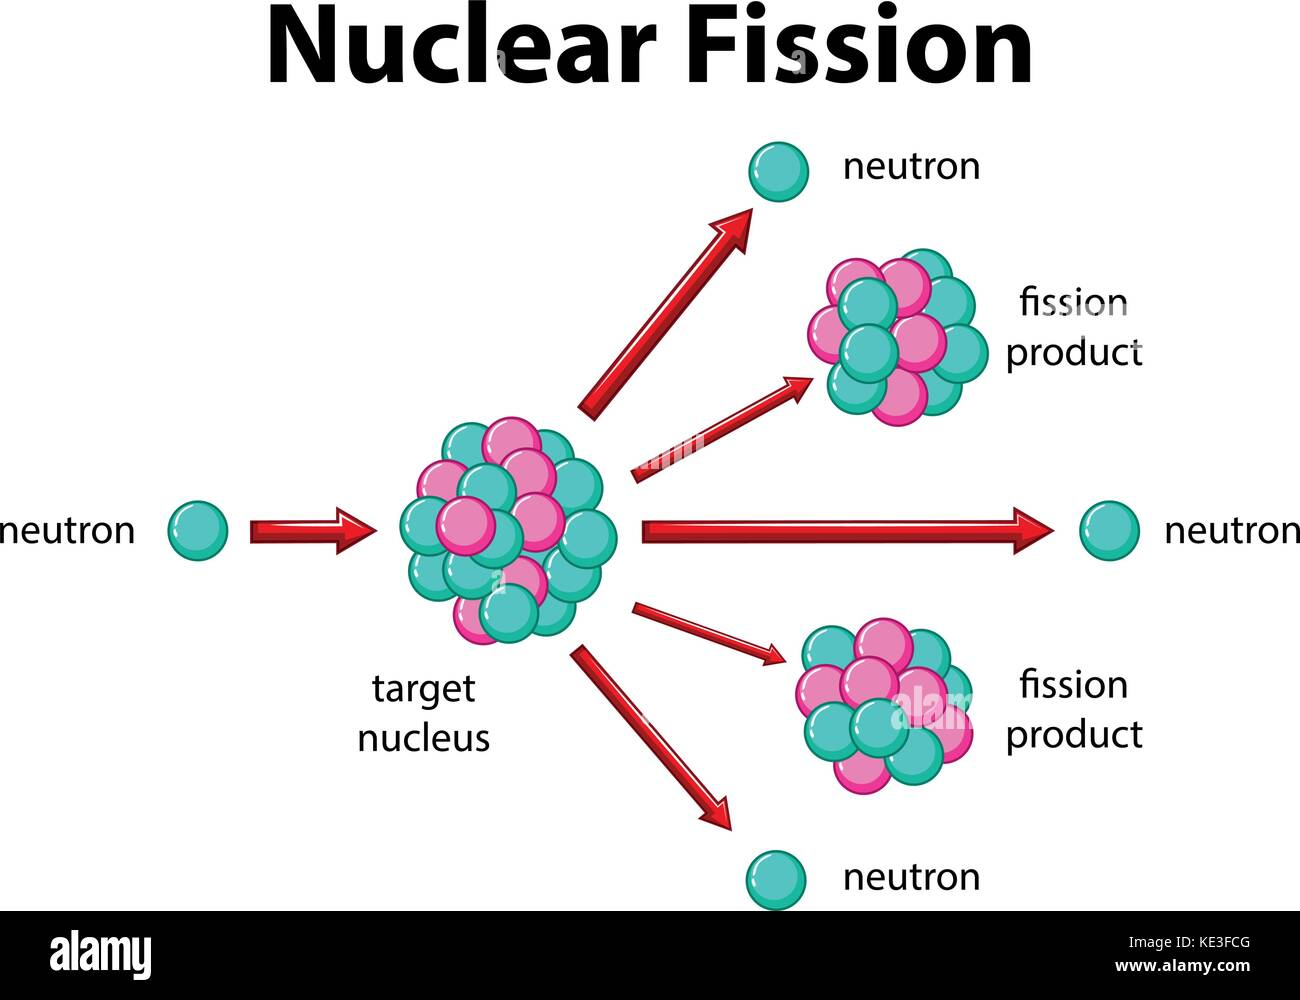 hight resolution of diagram showing nuclear fission illustration